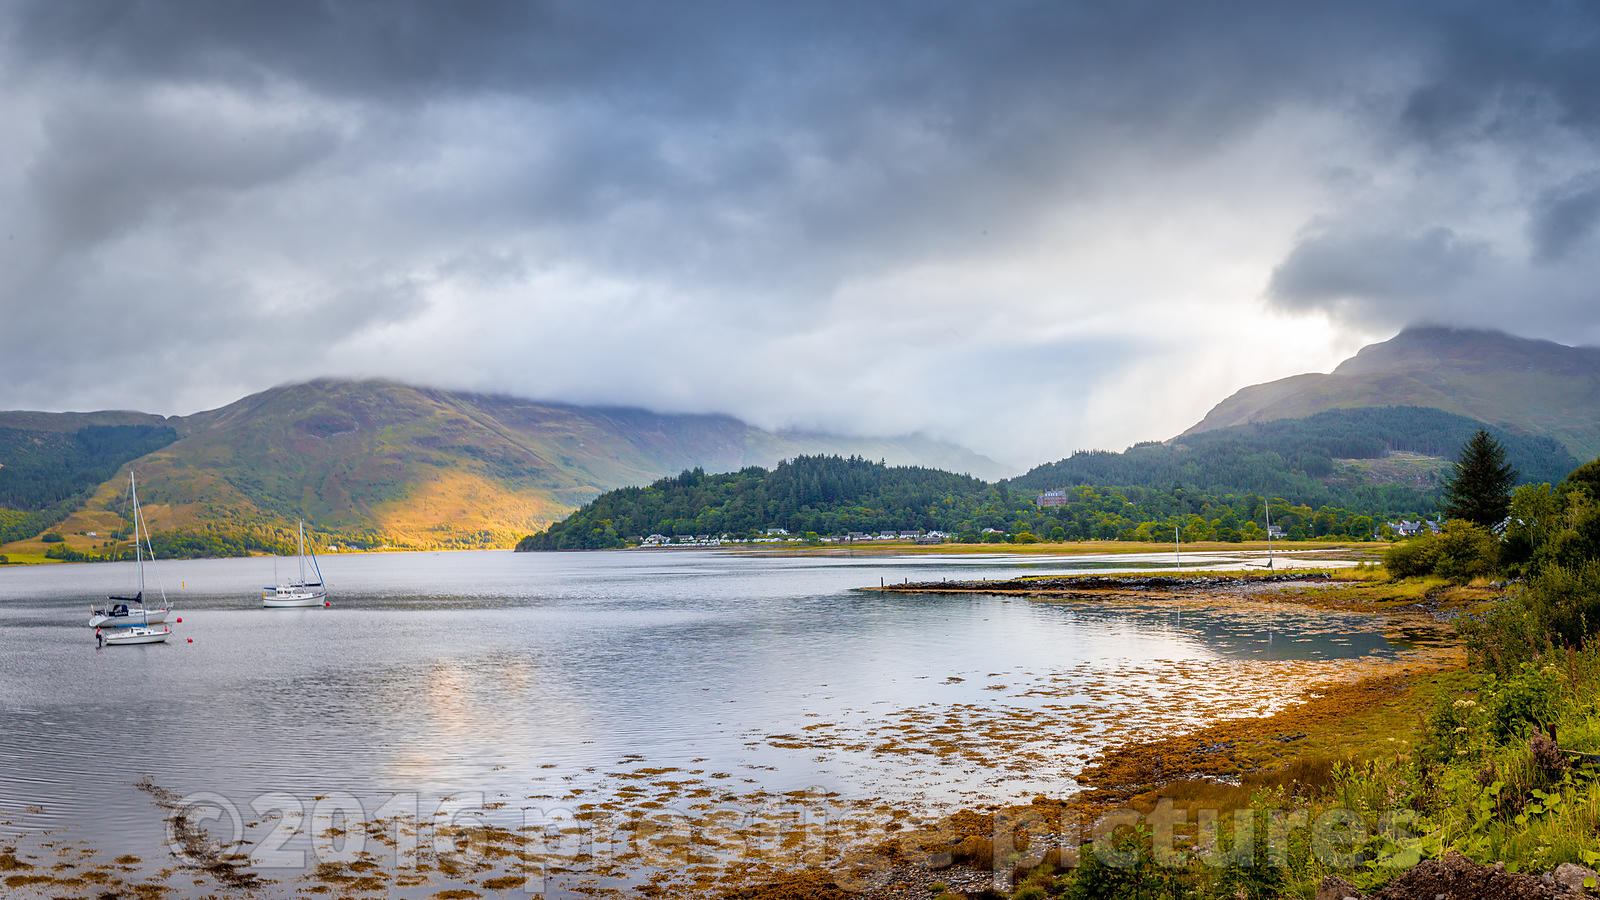 View across the Beautiful Loch Leven in Glencoe Scotland